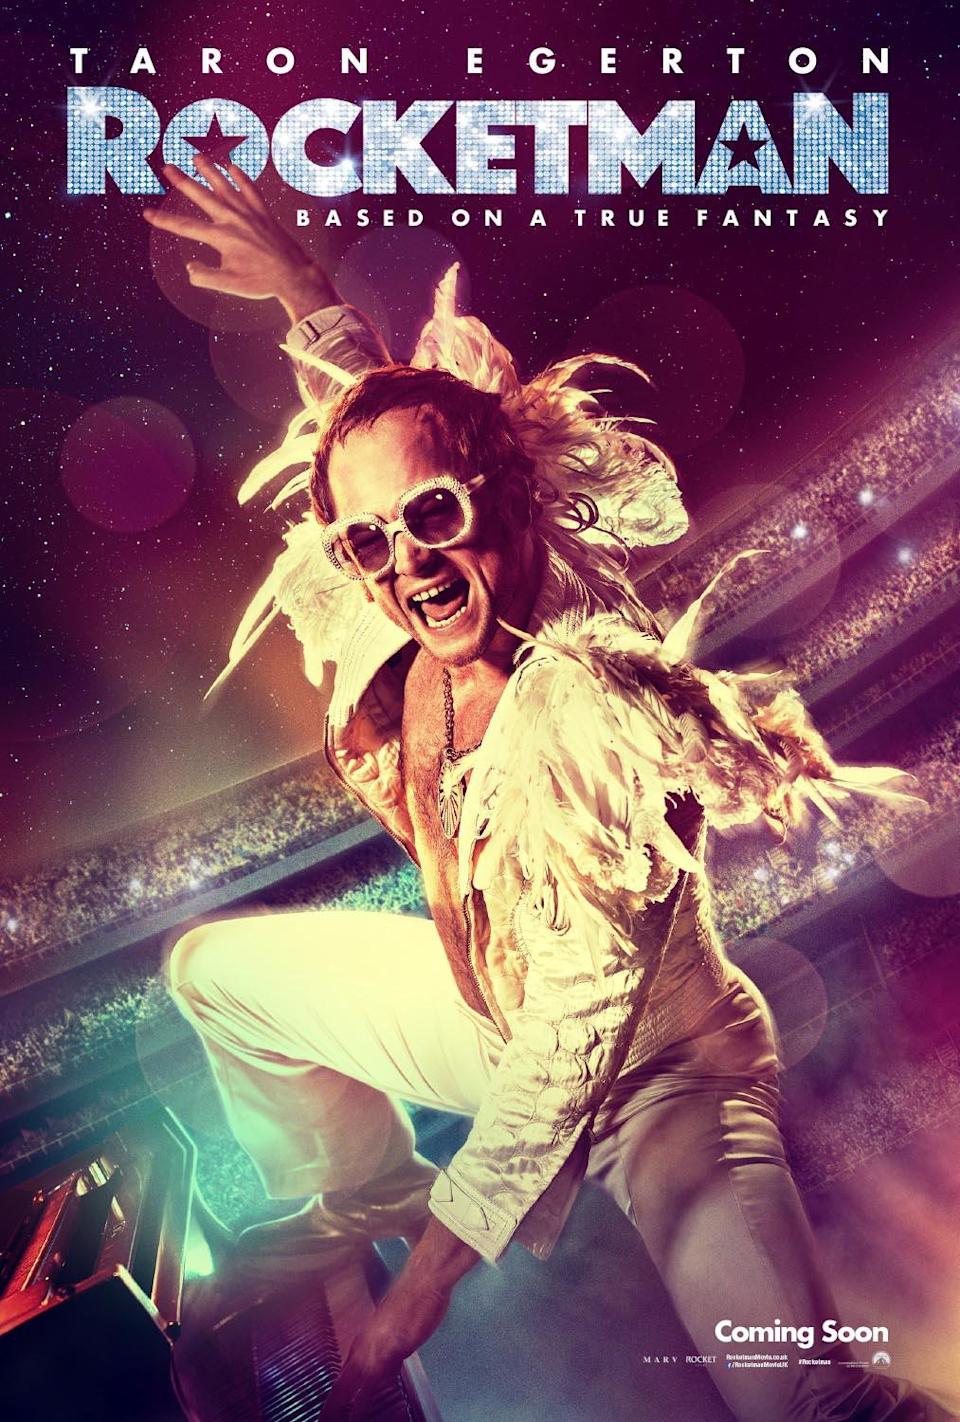 Visionary David LaChapelle has created some of the most iconic imagery in Elton John's career, and now turns his lens on the <i>Rocketman</i> film poster, with Taron Egerton as Elton John. (Paramount)